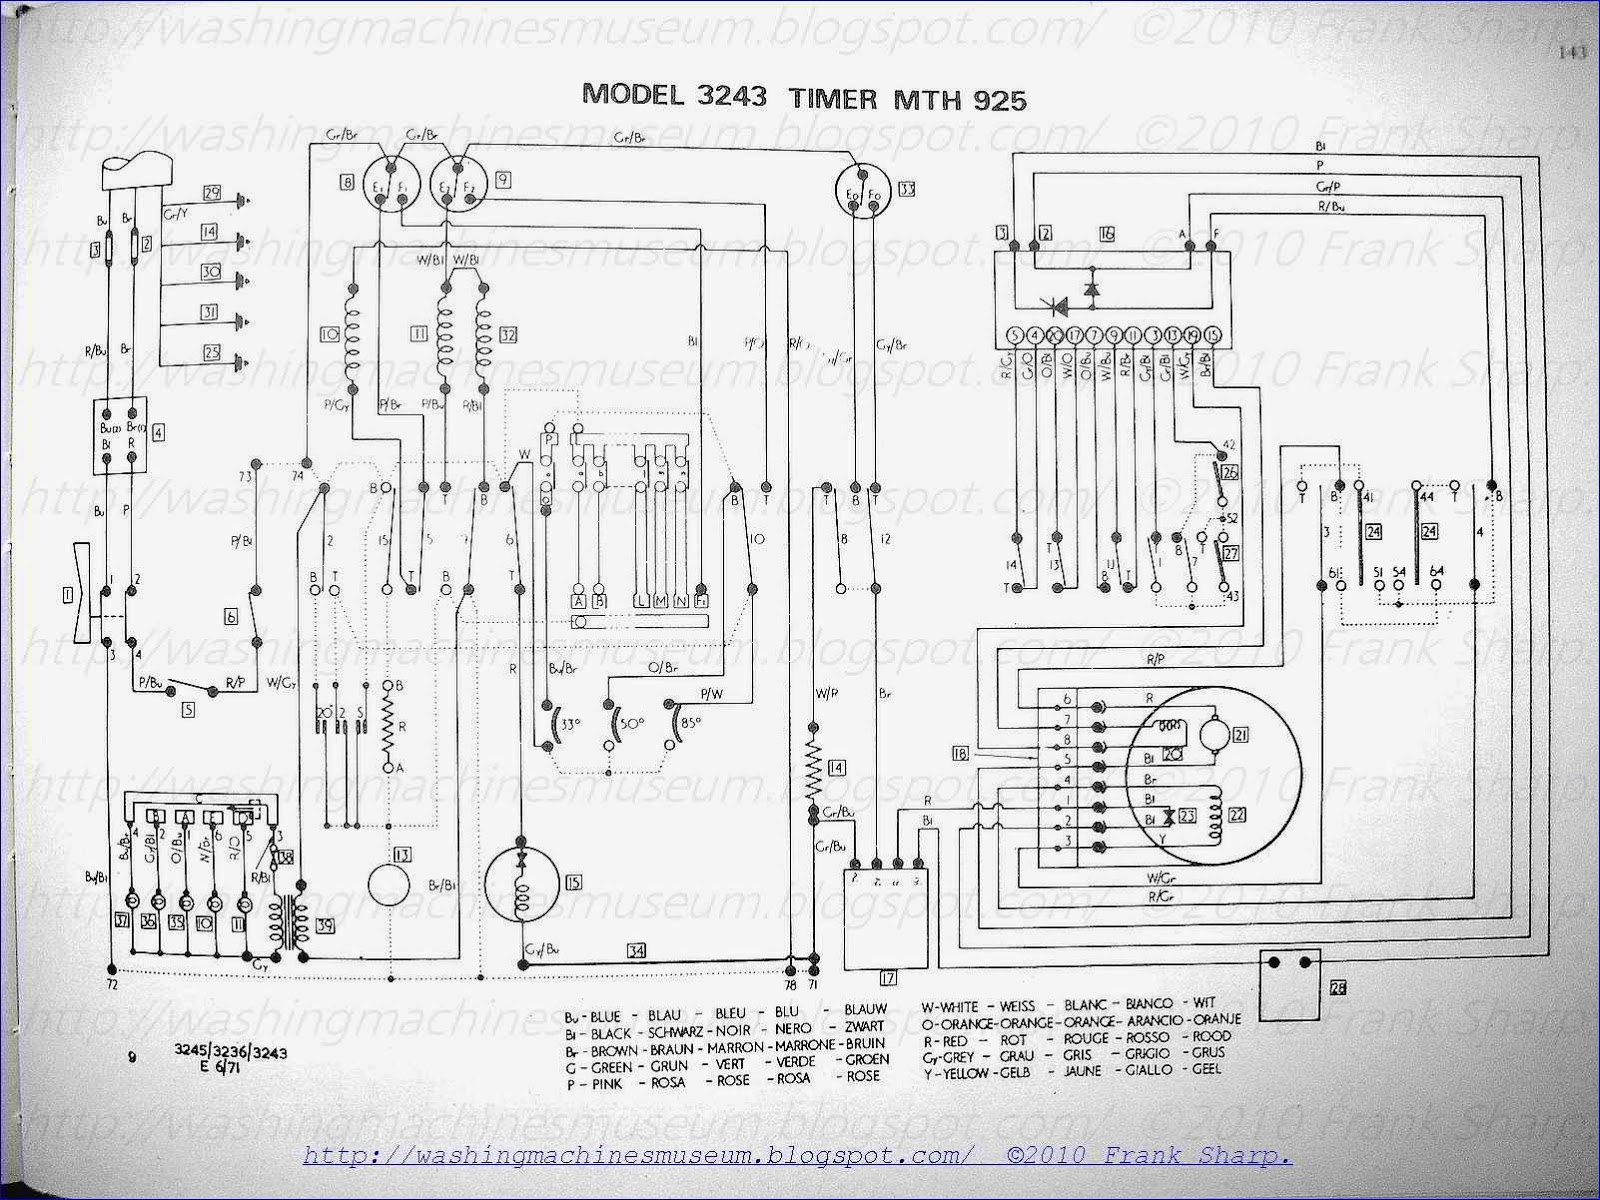 Hoover Washing Machine Motor Wiring Diagram : Schematic diagram of washing machine machines